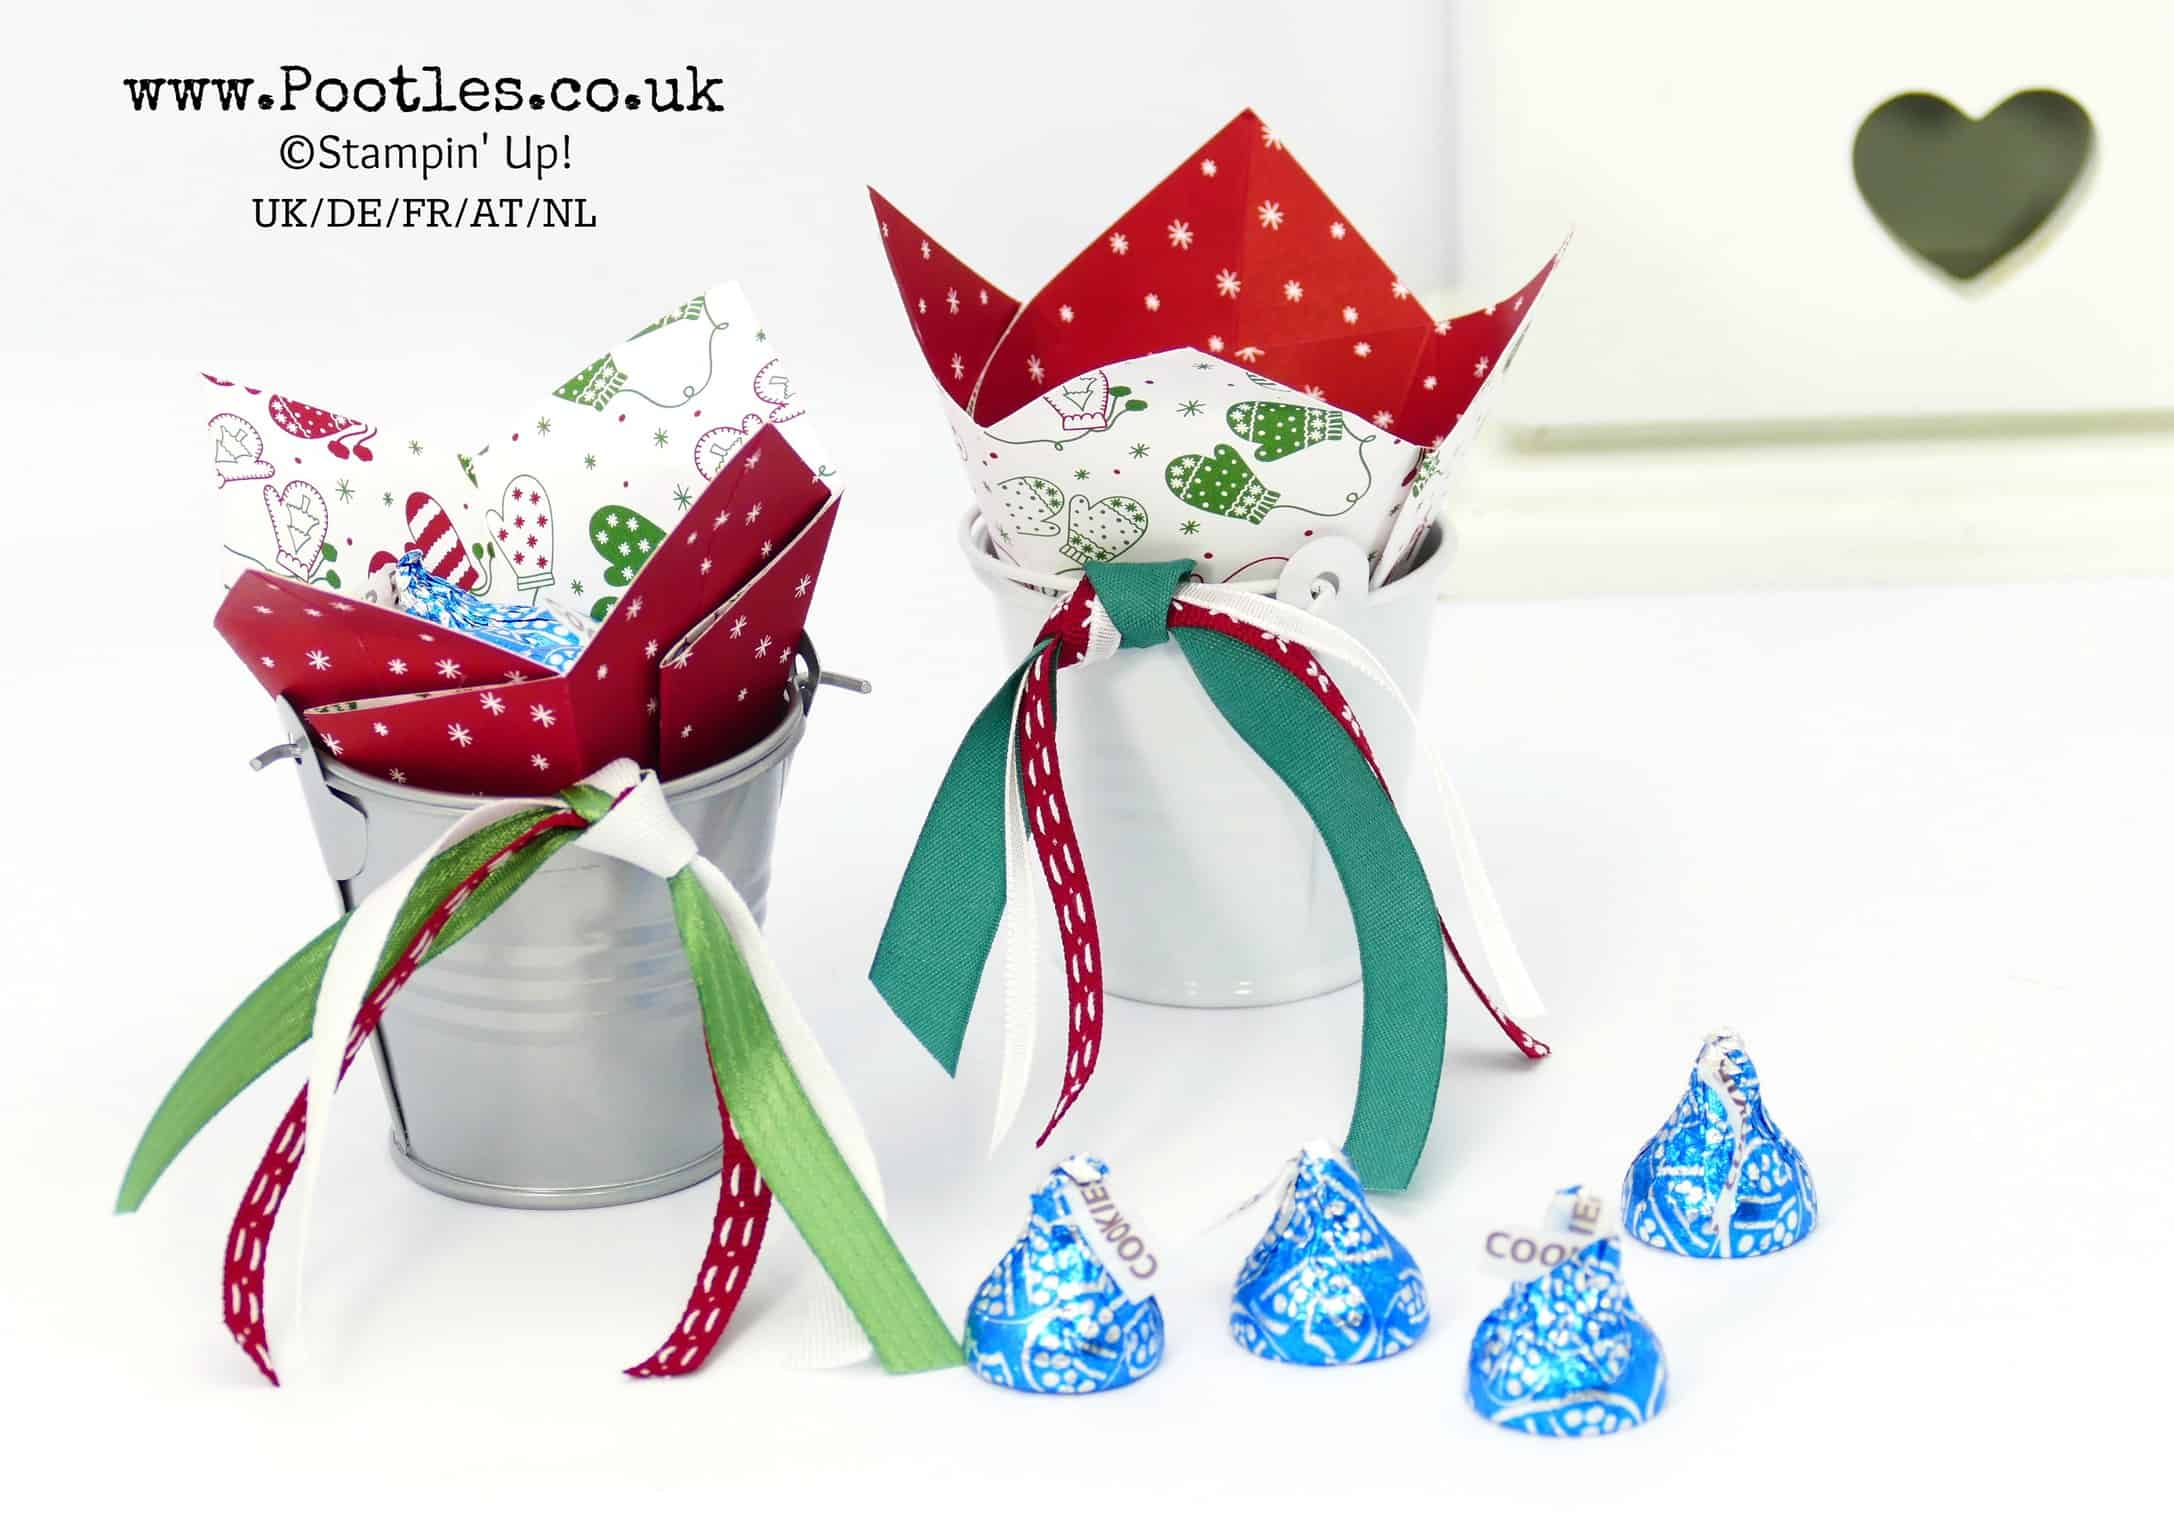 Bucket of Hershey Kisses using Stampin' Up! Supplies